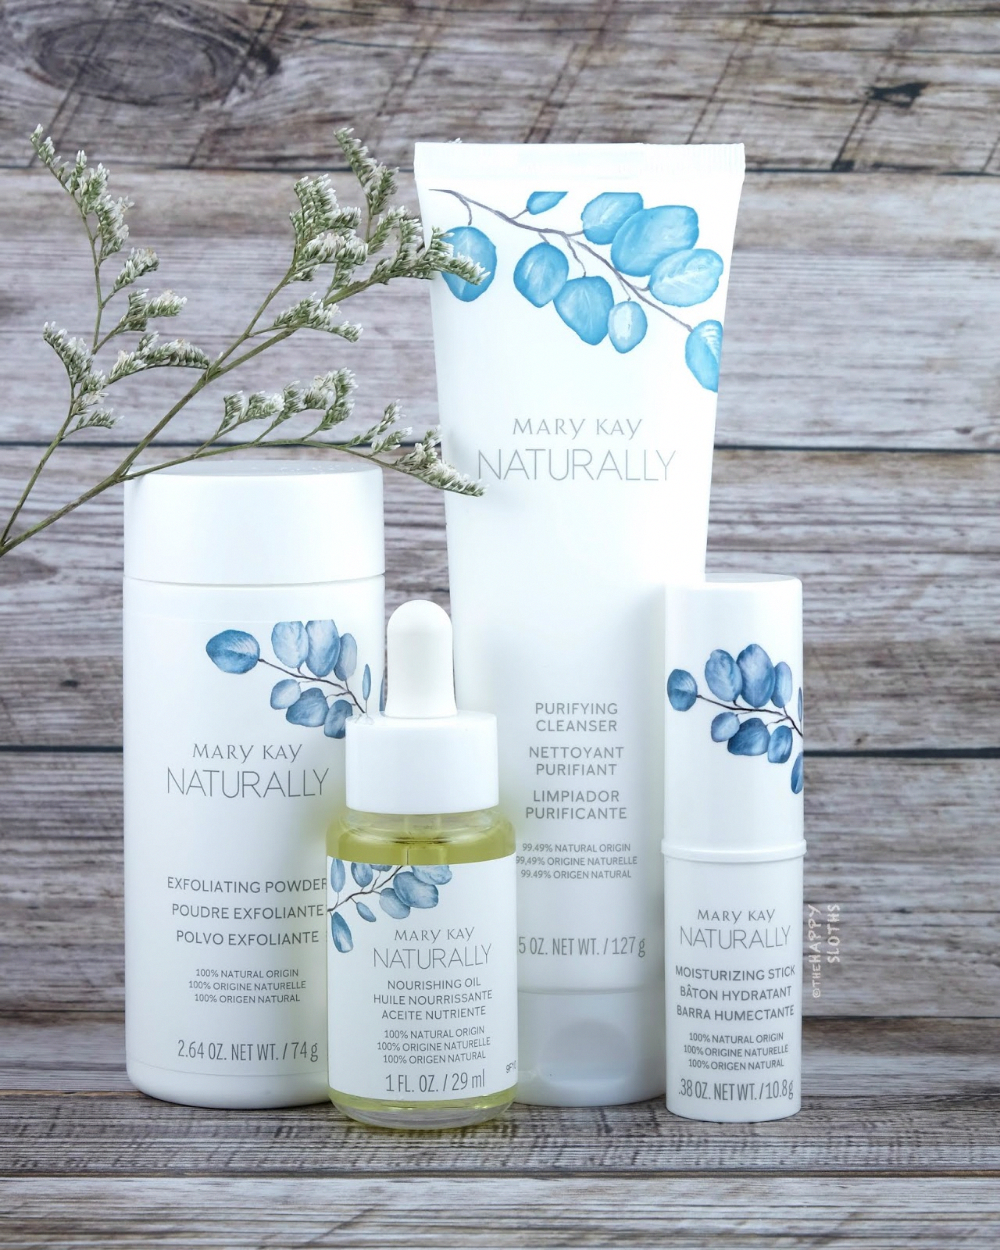 Mary Kay Naturally Skincare Collection Review in 2020